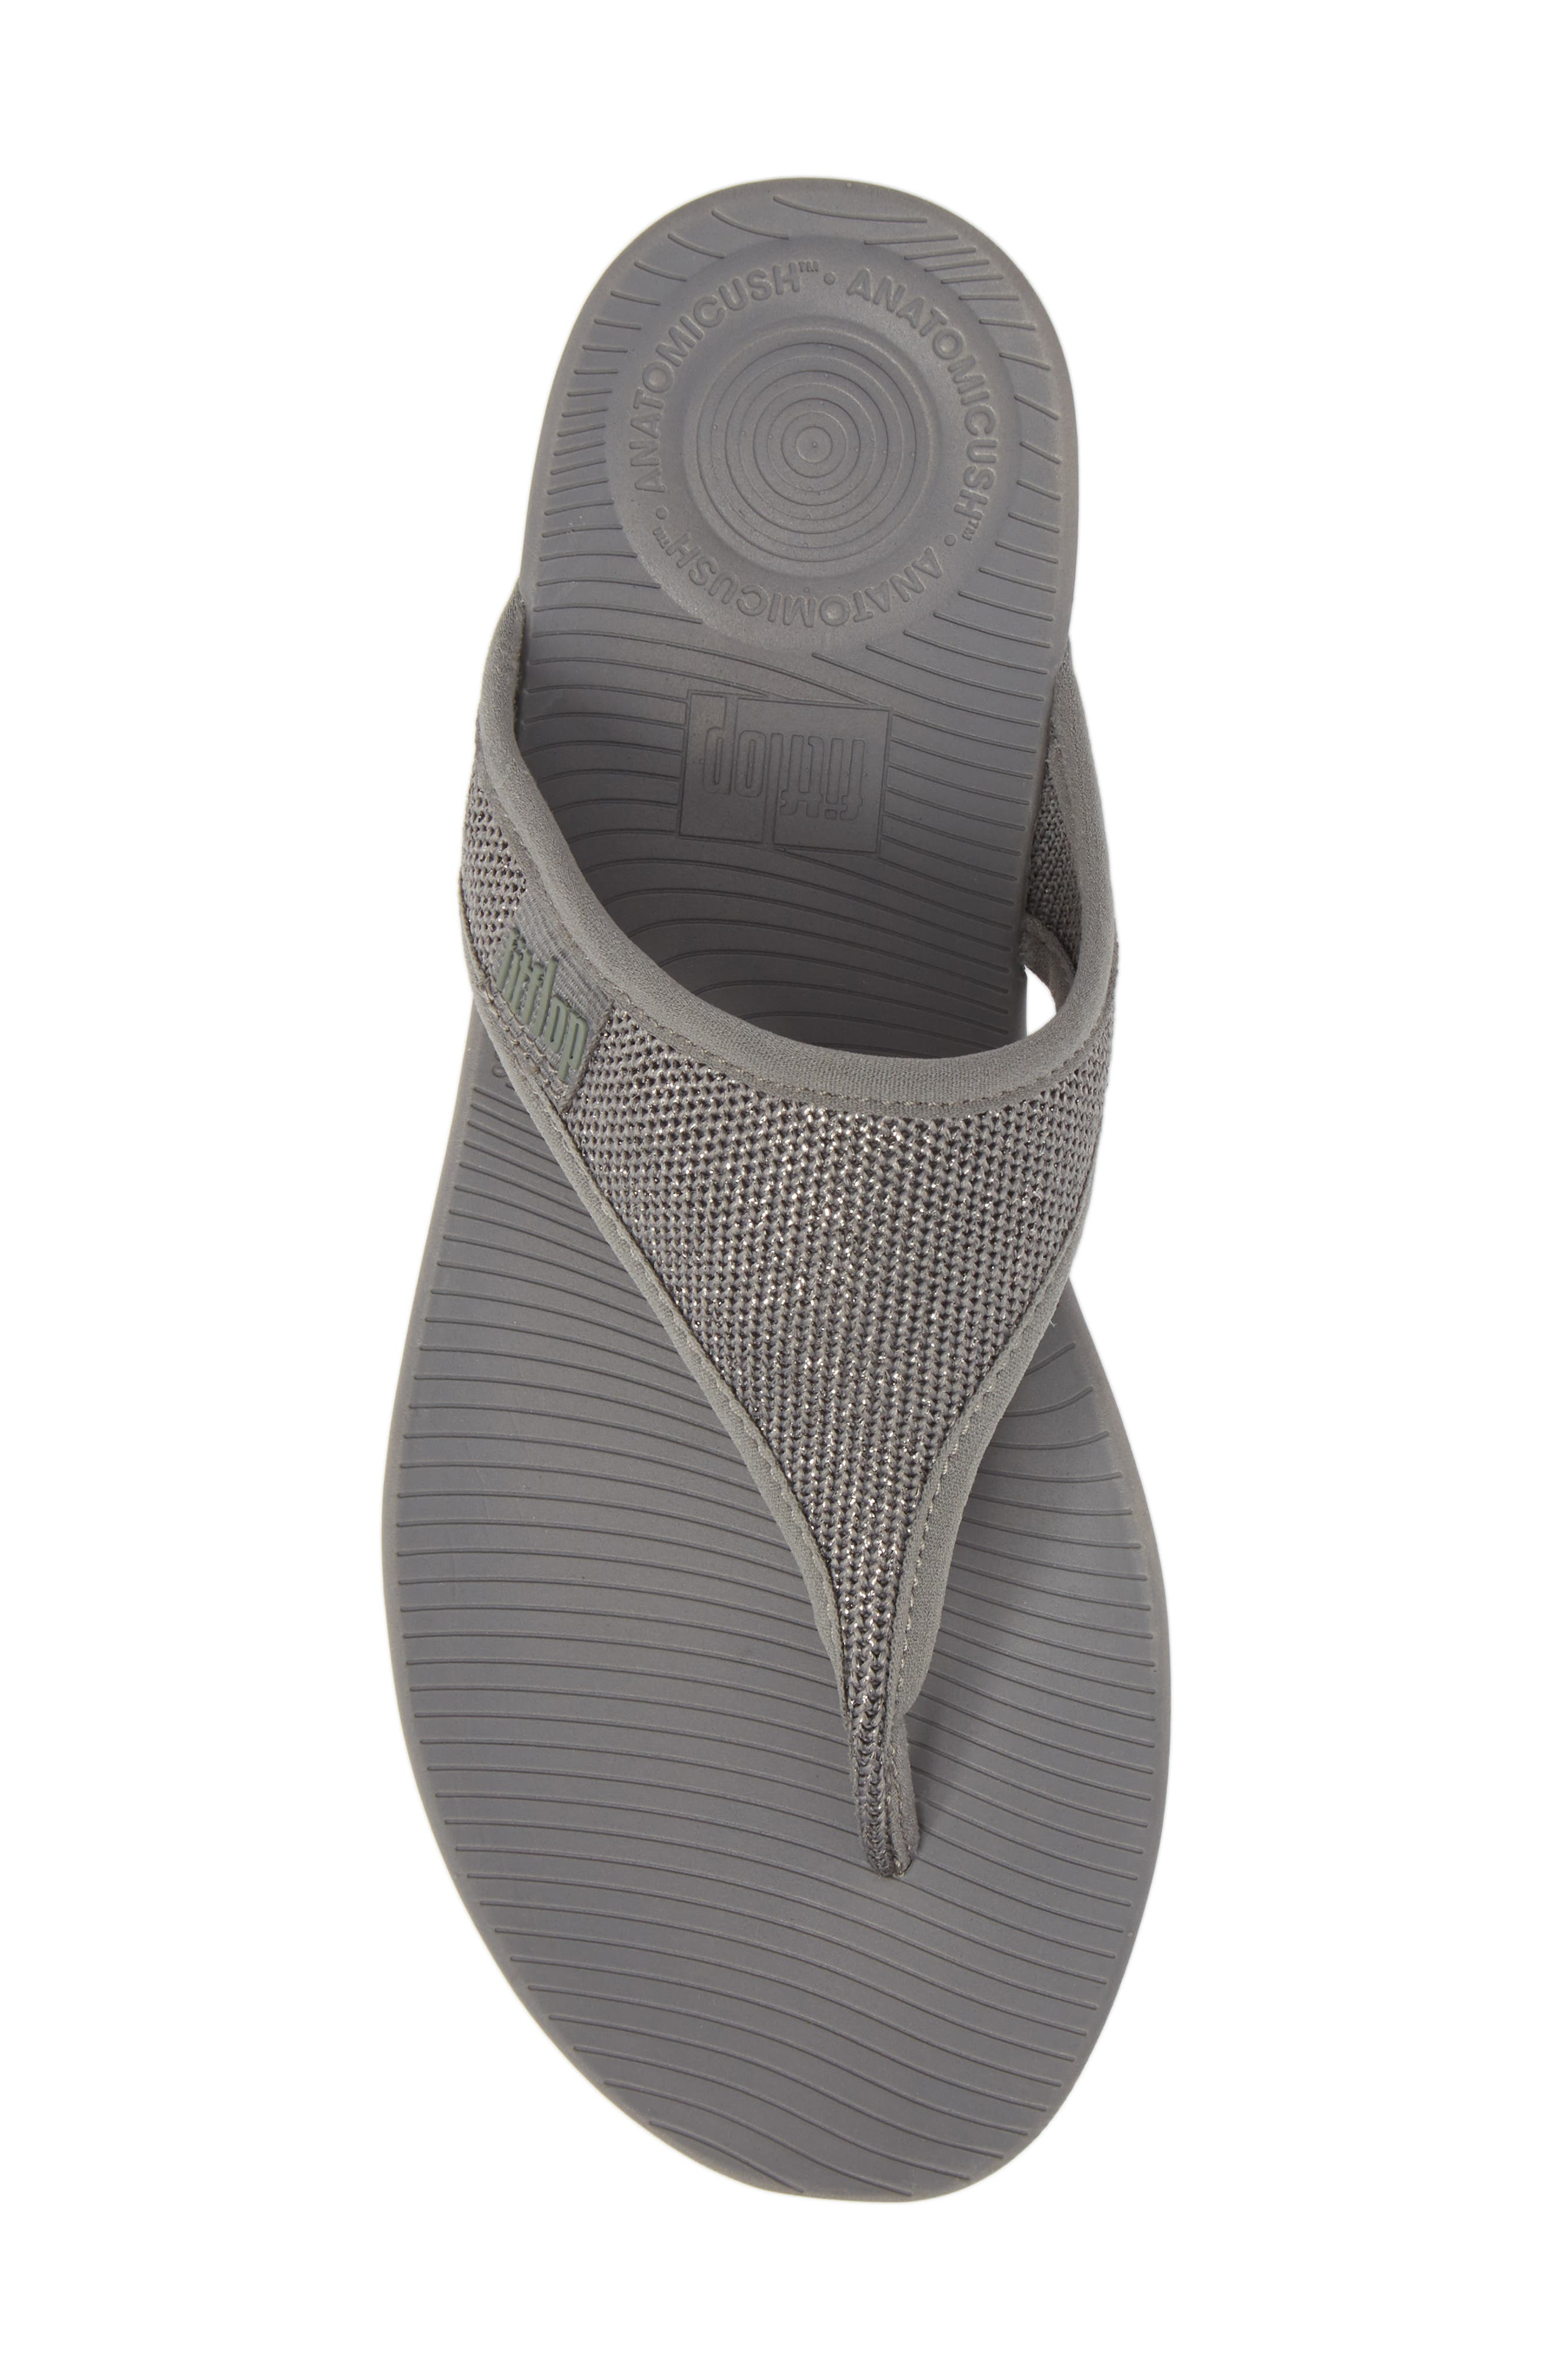 Überknit Flip Flop,                             Alternate thumbnail 5, color,                             Charcoal Grey/ Pewter Leather